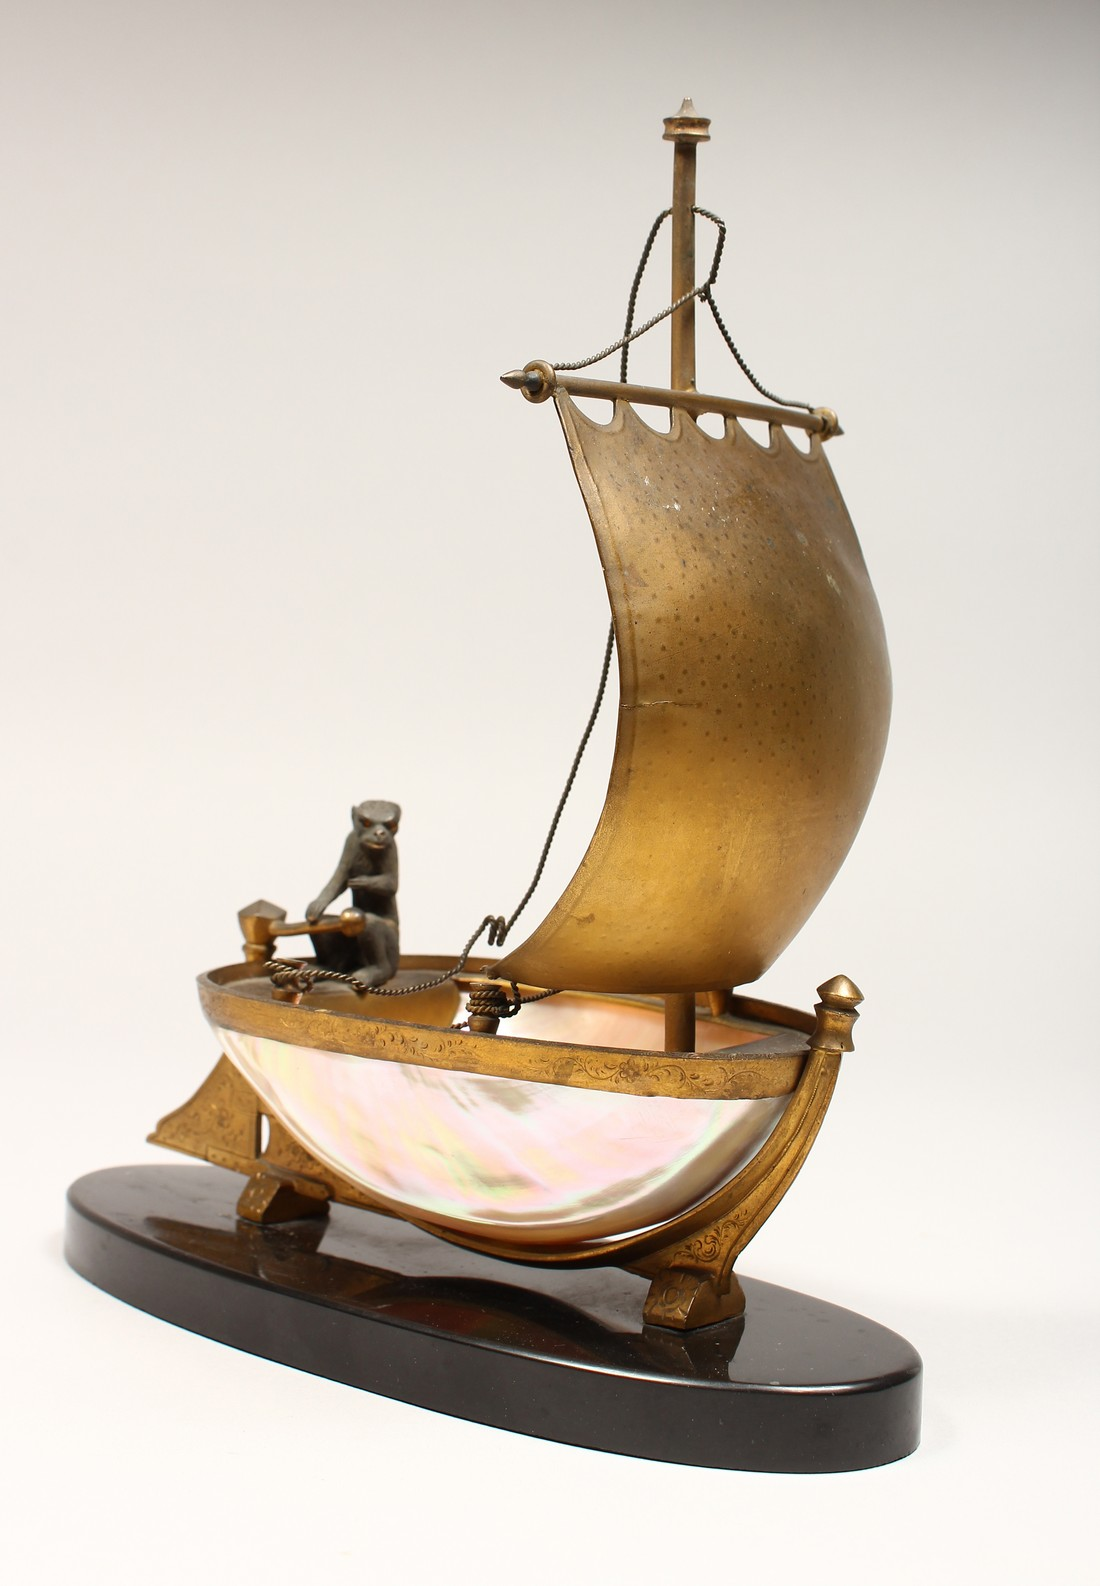 AN UNUSUAL LATE 19TH CENTURY FRENCH ORMOLU MOUNTED SHELL, mounted as a small sailing dinghy, a